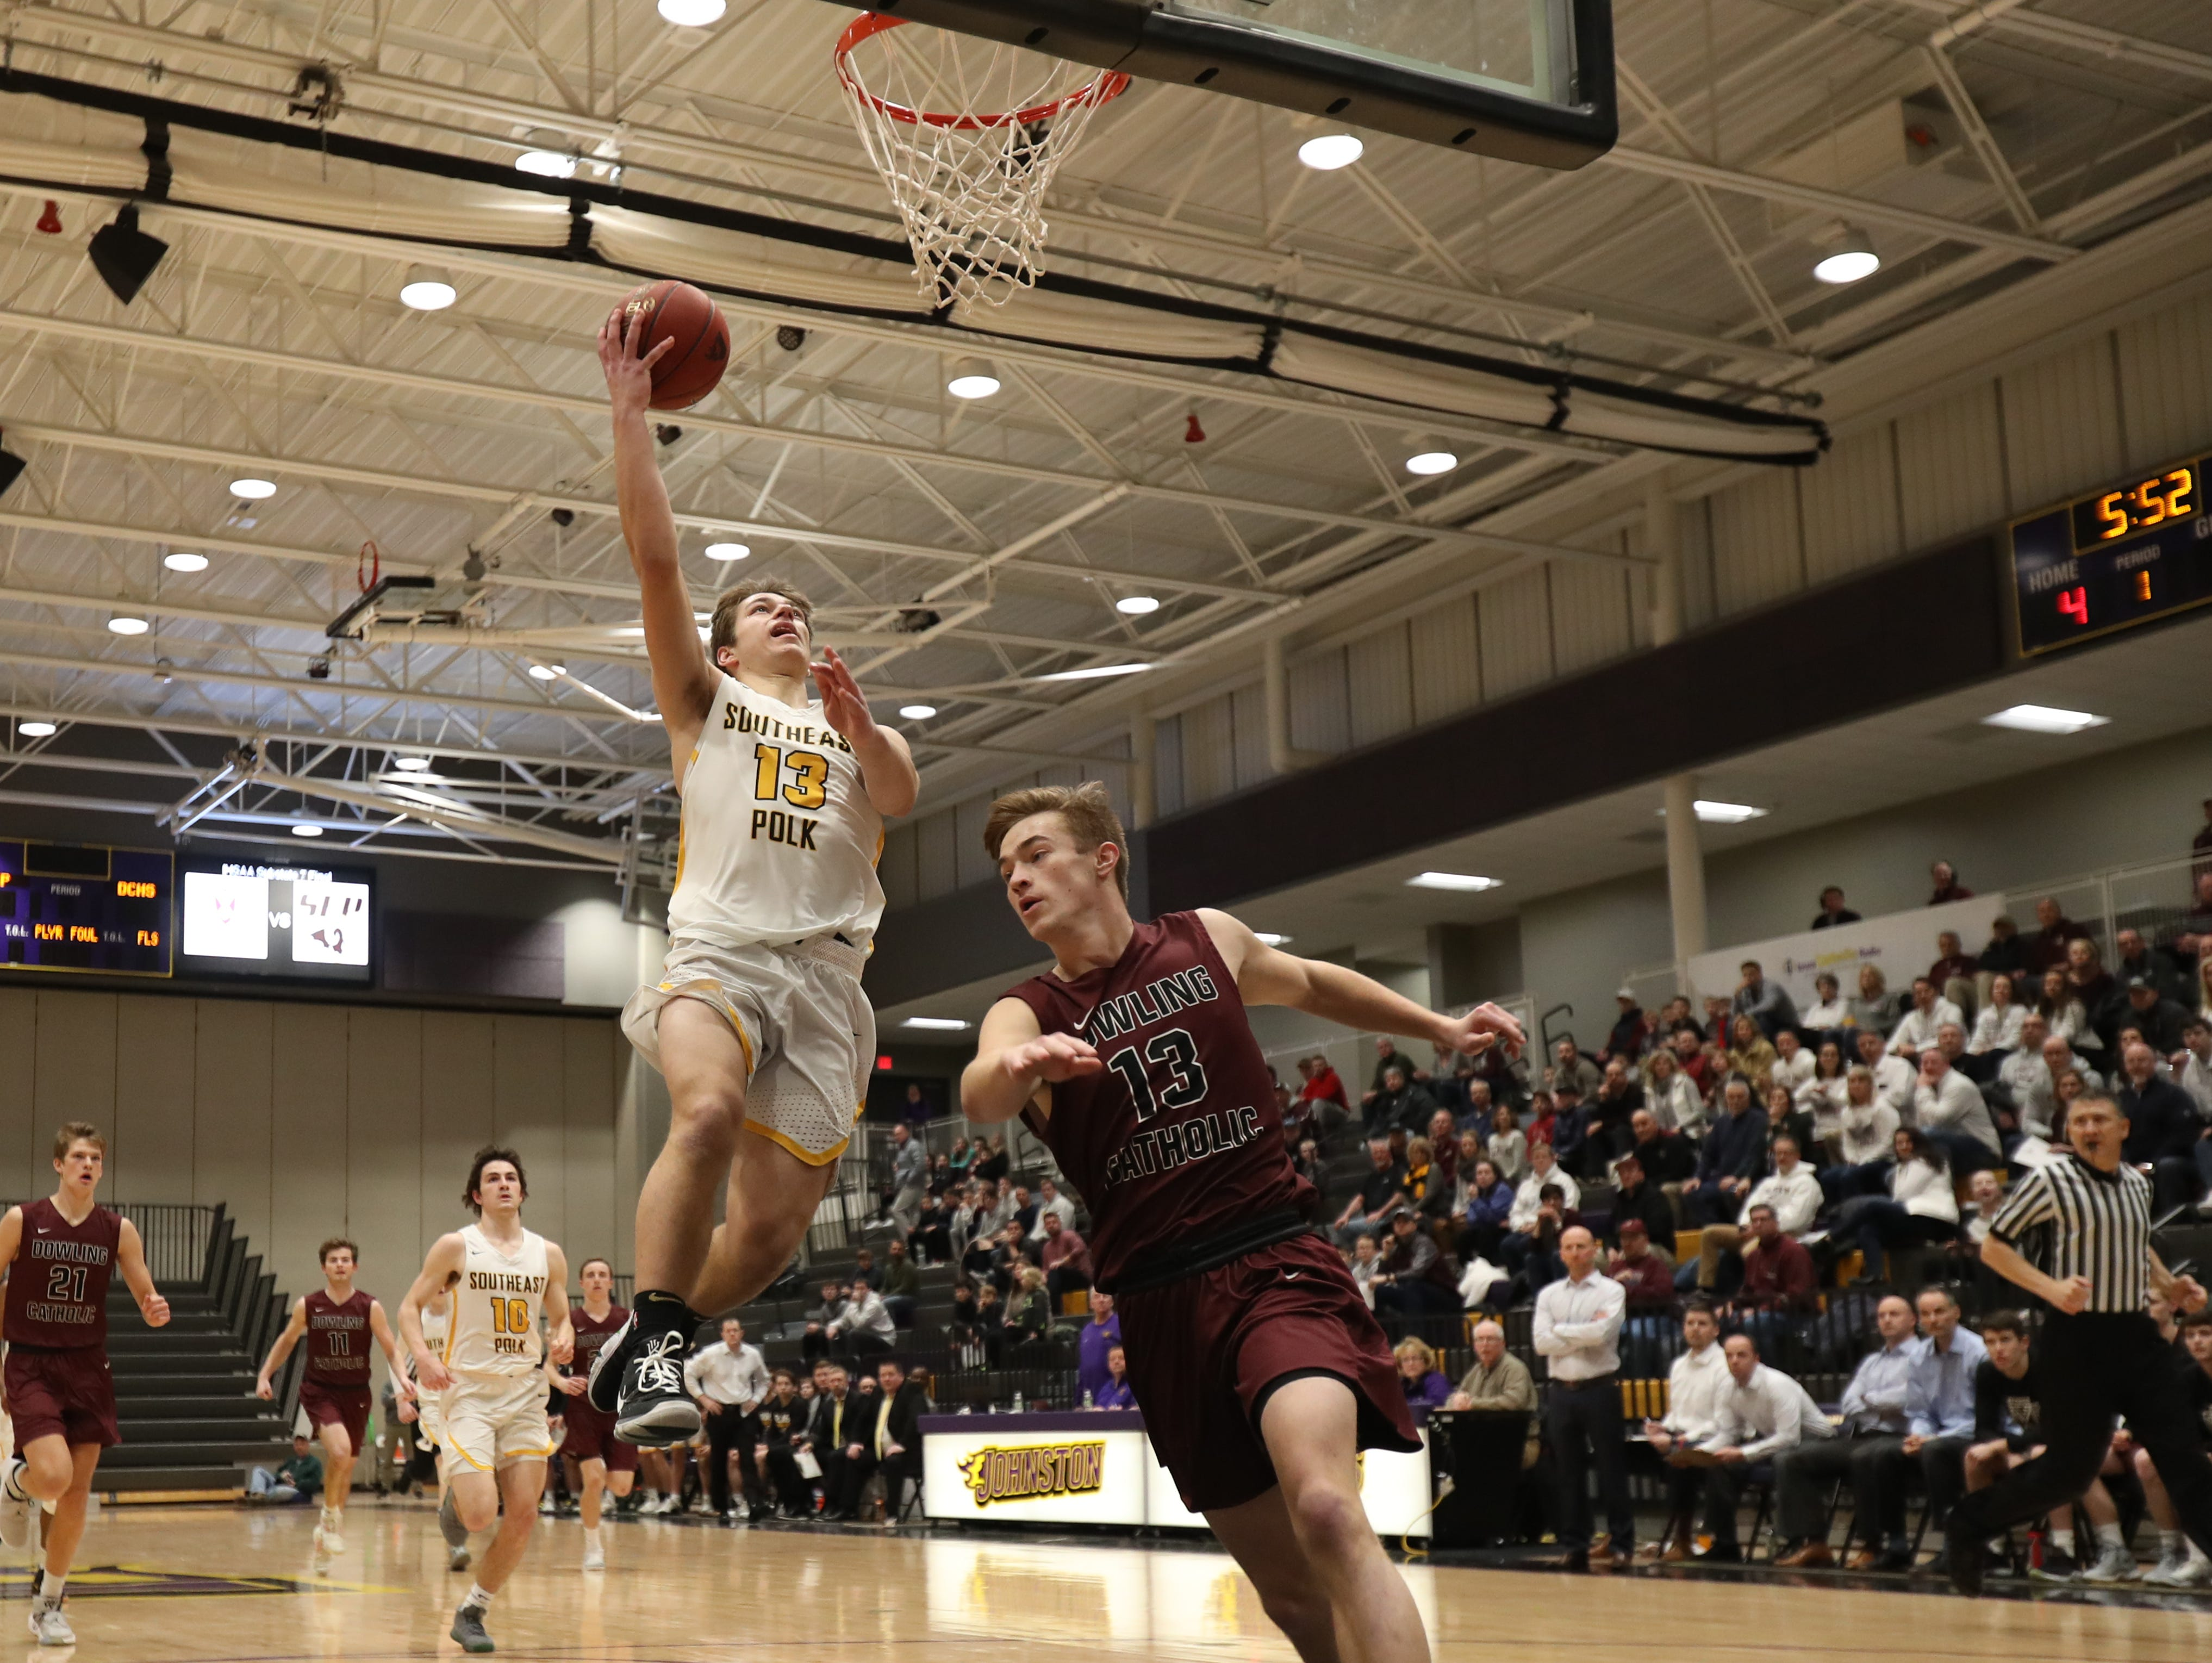 Southeast Polk's Dominic Caggiano (13) beats Dowling Catholic's Jack Lyman (13) to the basket during their game at Johnston High School in Johnston, Iowa, on Tuesday, Feb. 26, 2019. Dowling won the game 44-40 to advance to state.